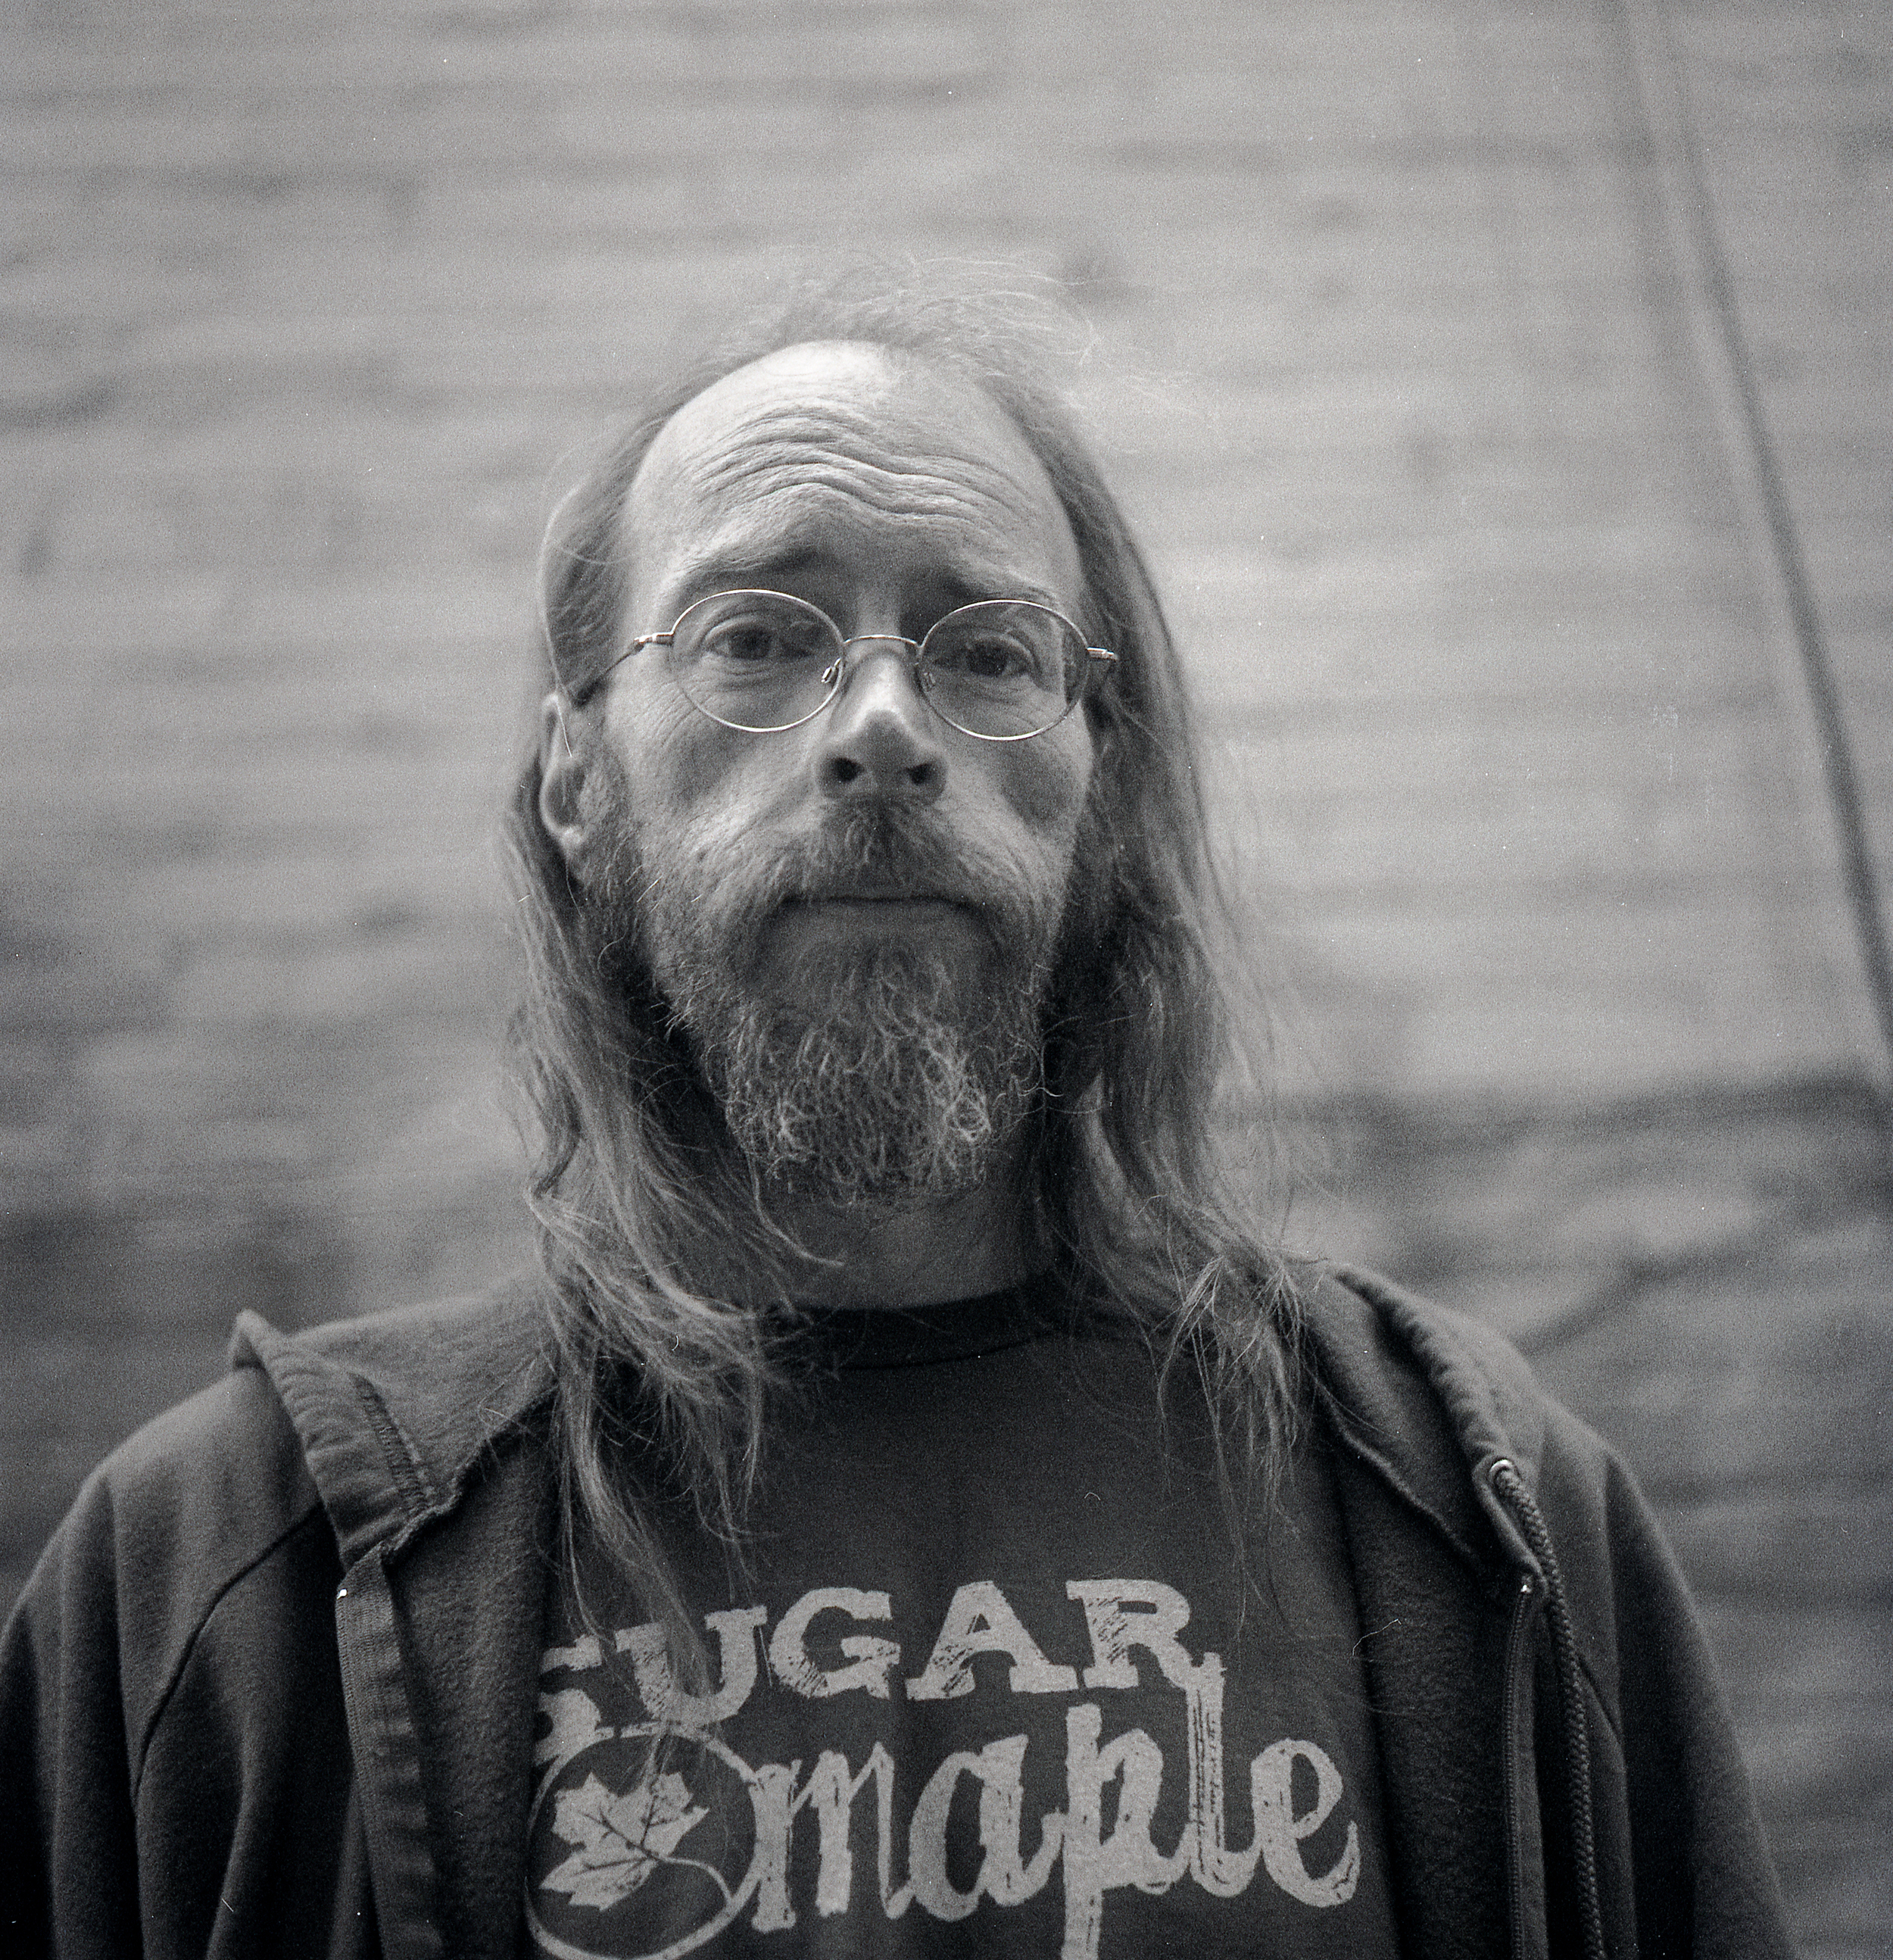 Charlie Parr is an a Minnesota musician who plays a mix of blues and American folk music.